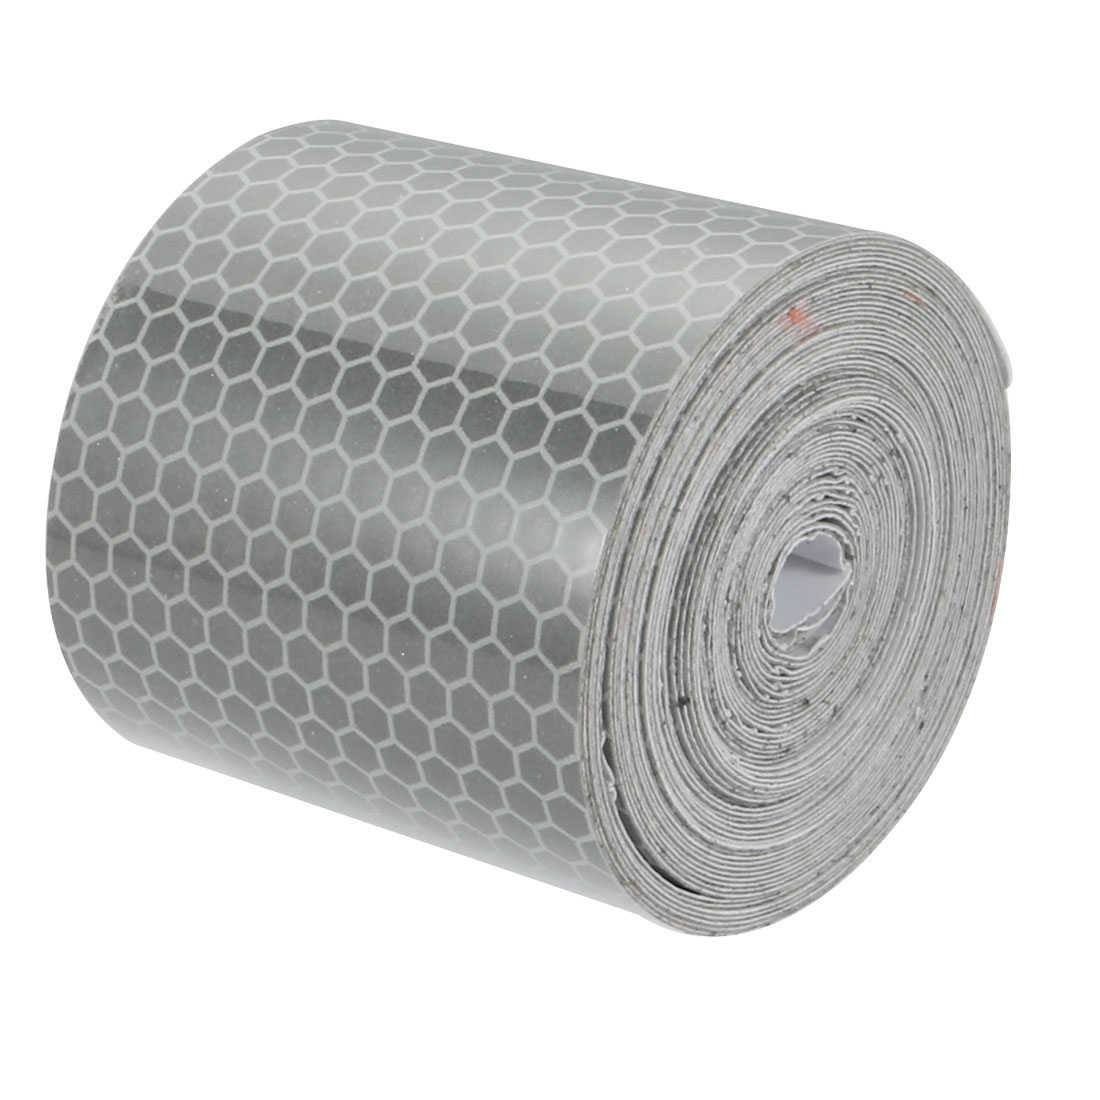 5cm Width 5M Long Honeycomb Adhesive Reflective Warning Tape Silvery White